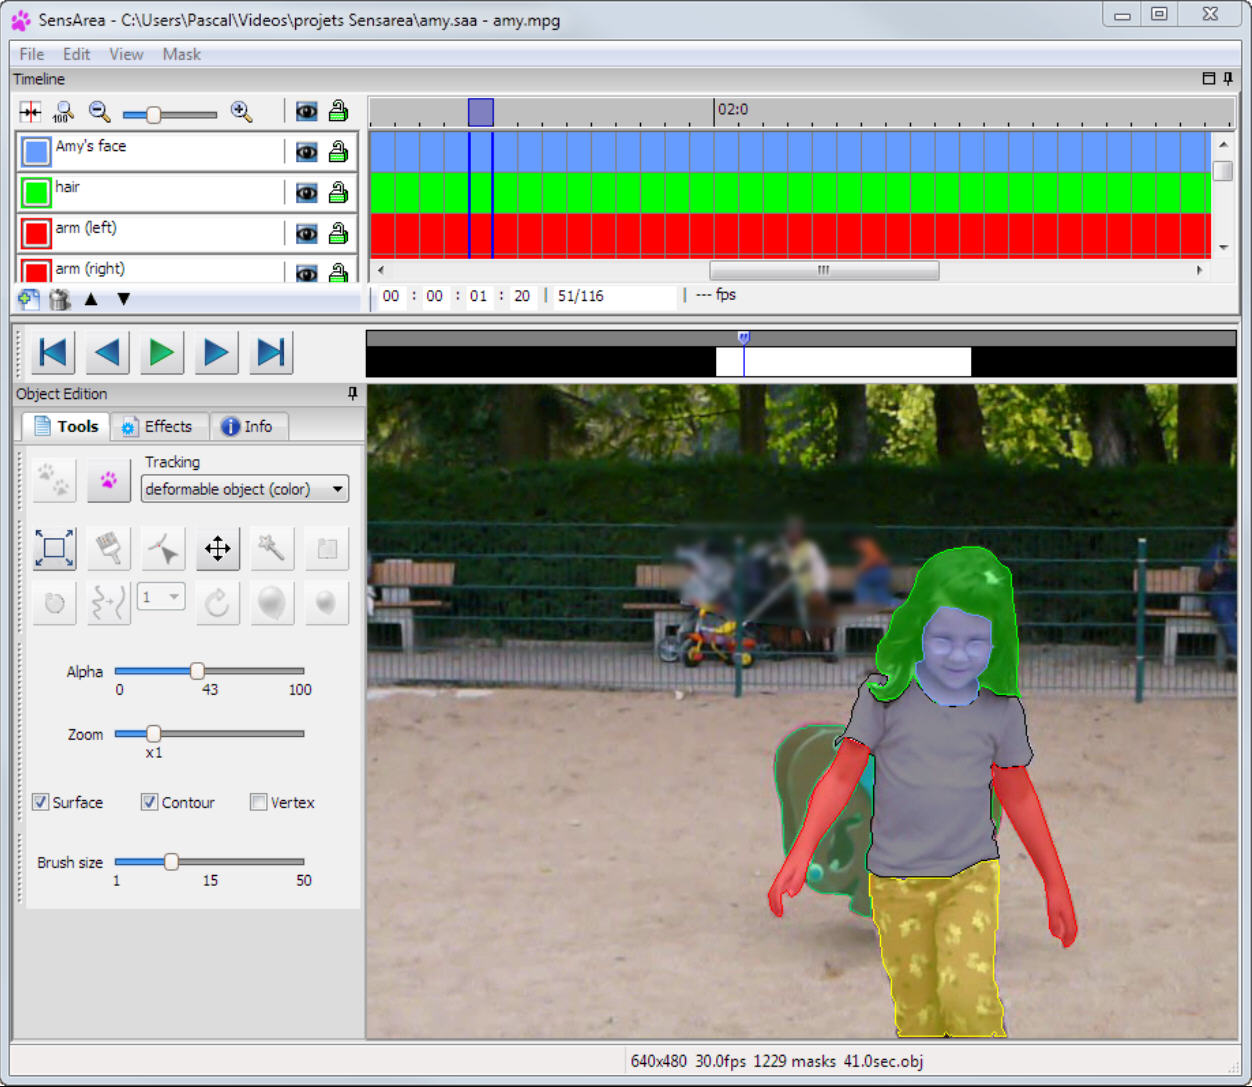 Track edit video objects with sensarea ccuart Images